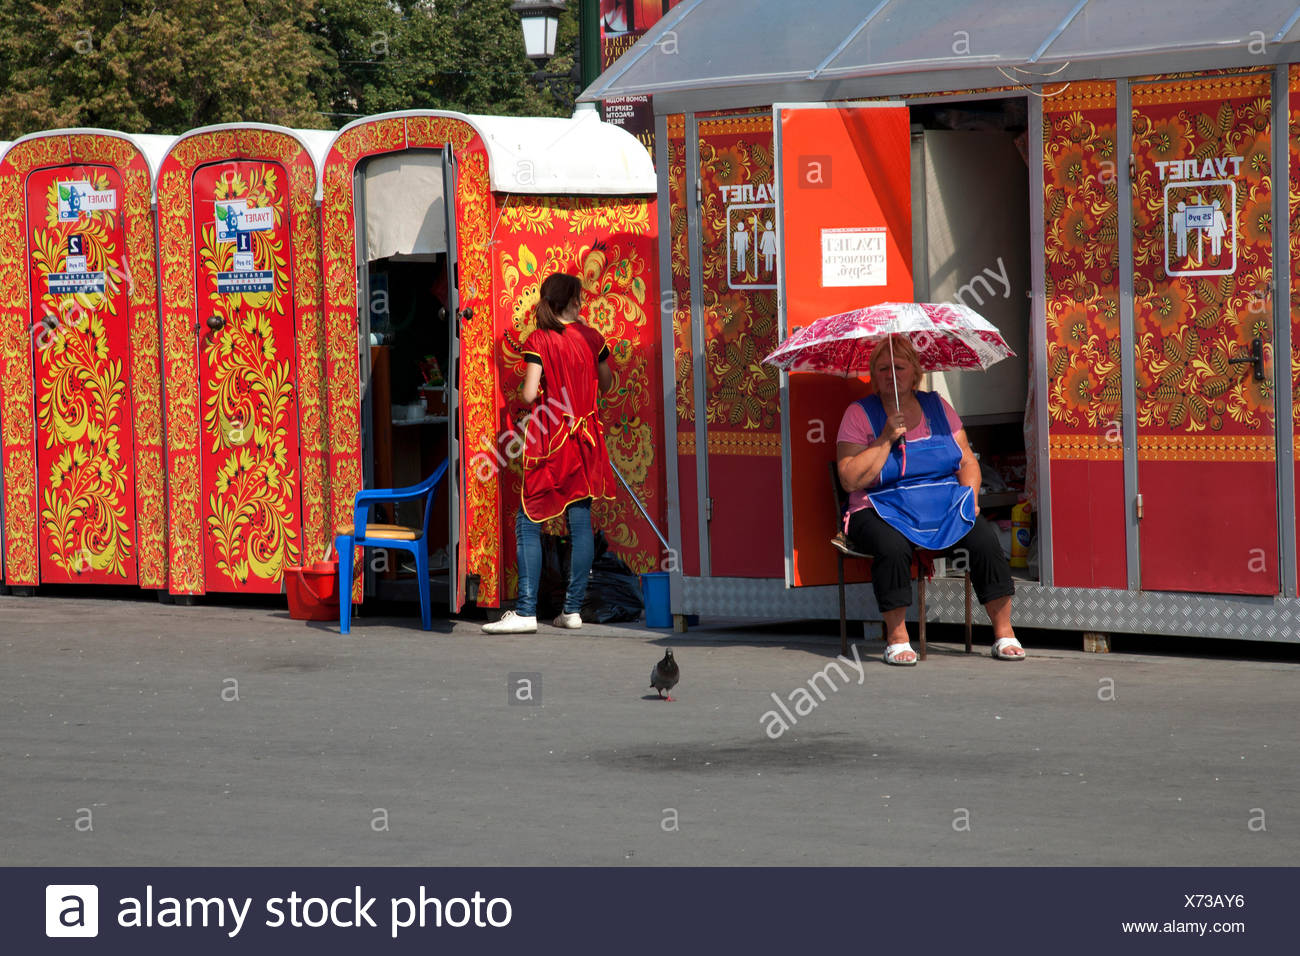 Sidewalk Convenience Moscow Style - Stock Image